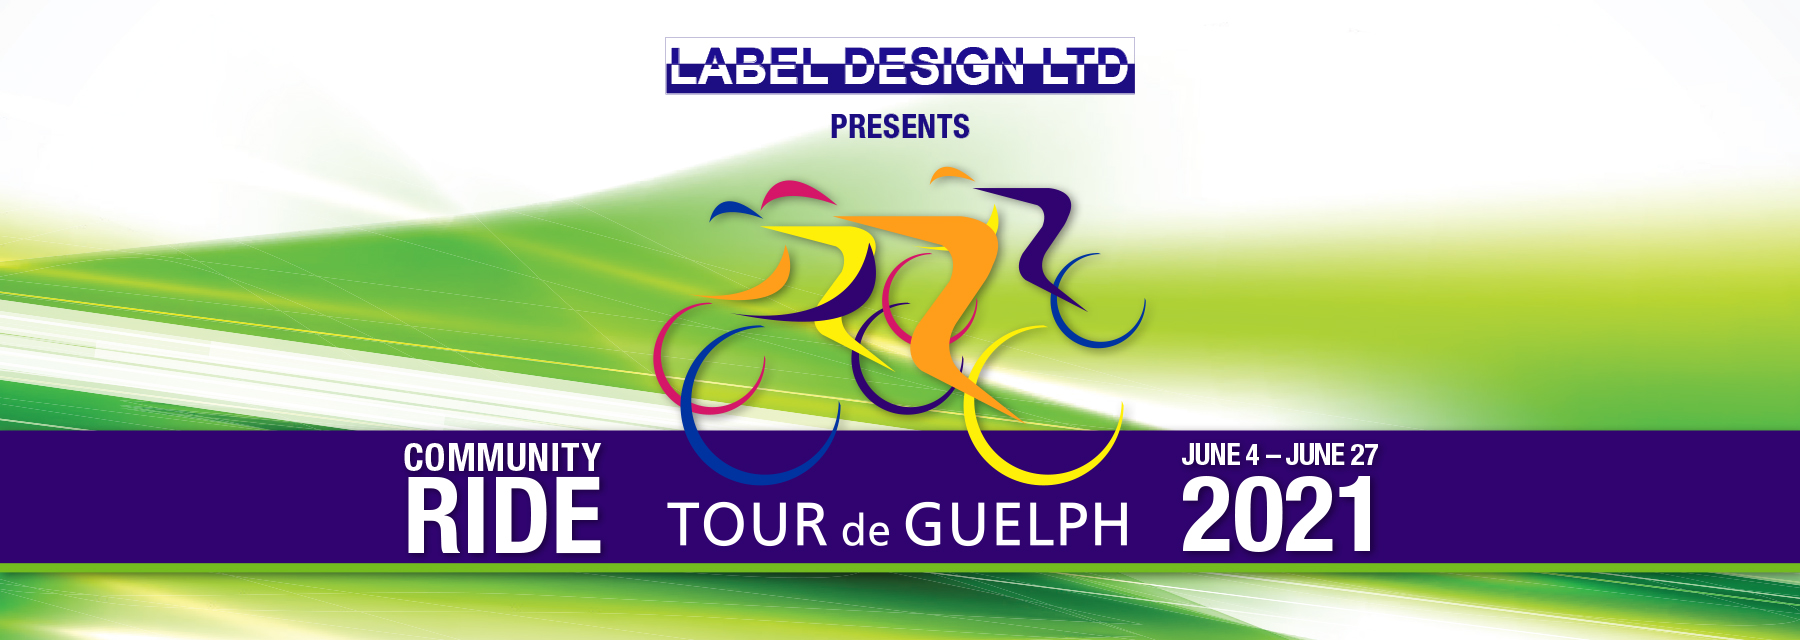 Tour de Guelph 2021 presented by Label Design